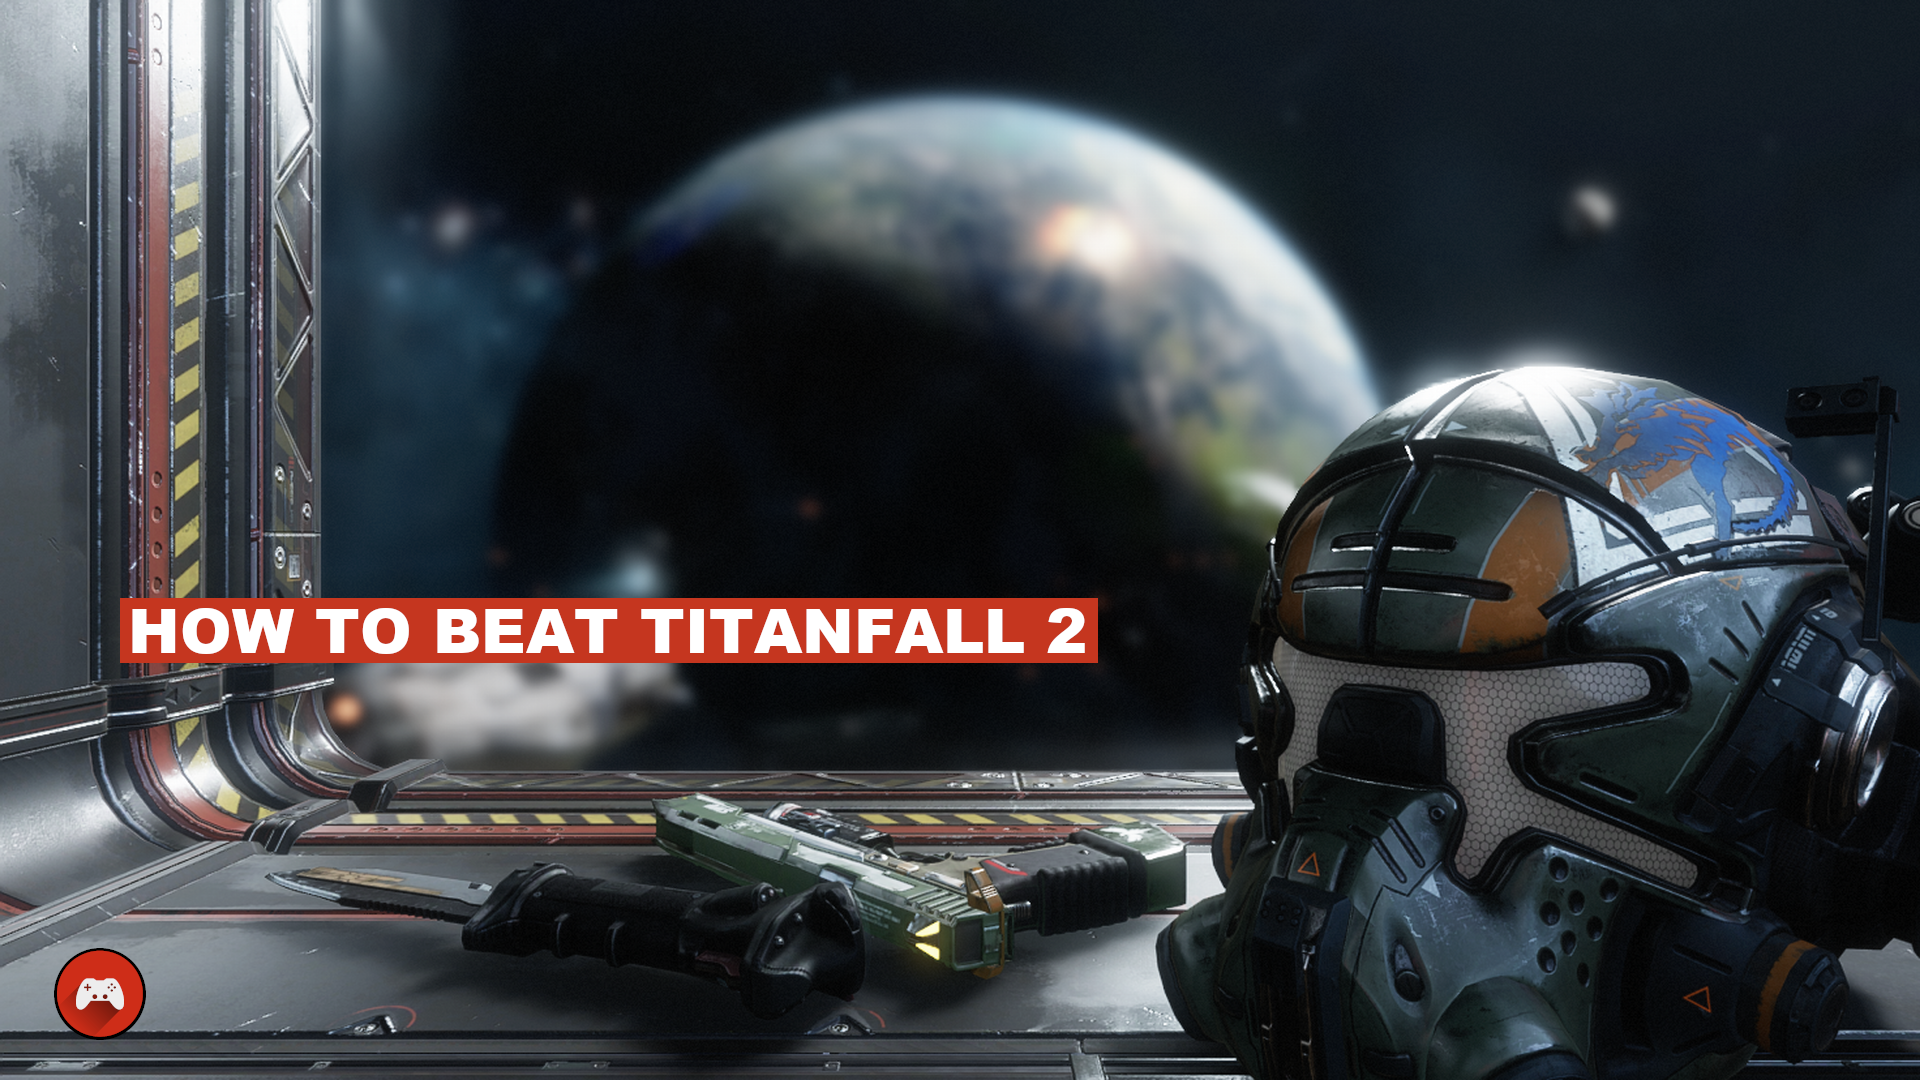 How To Beat Titanfall 2